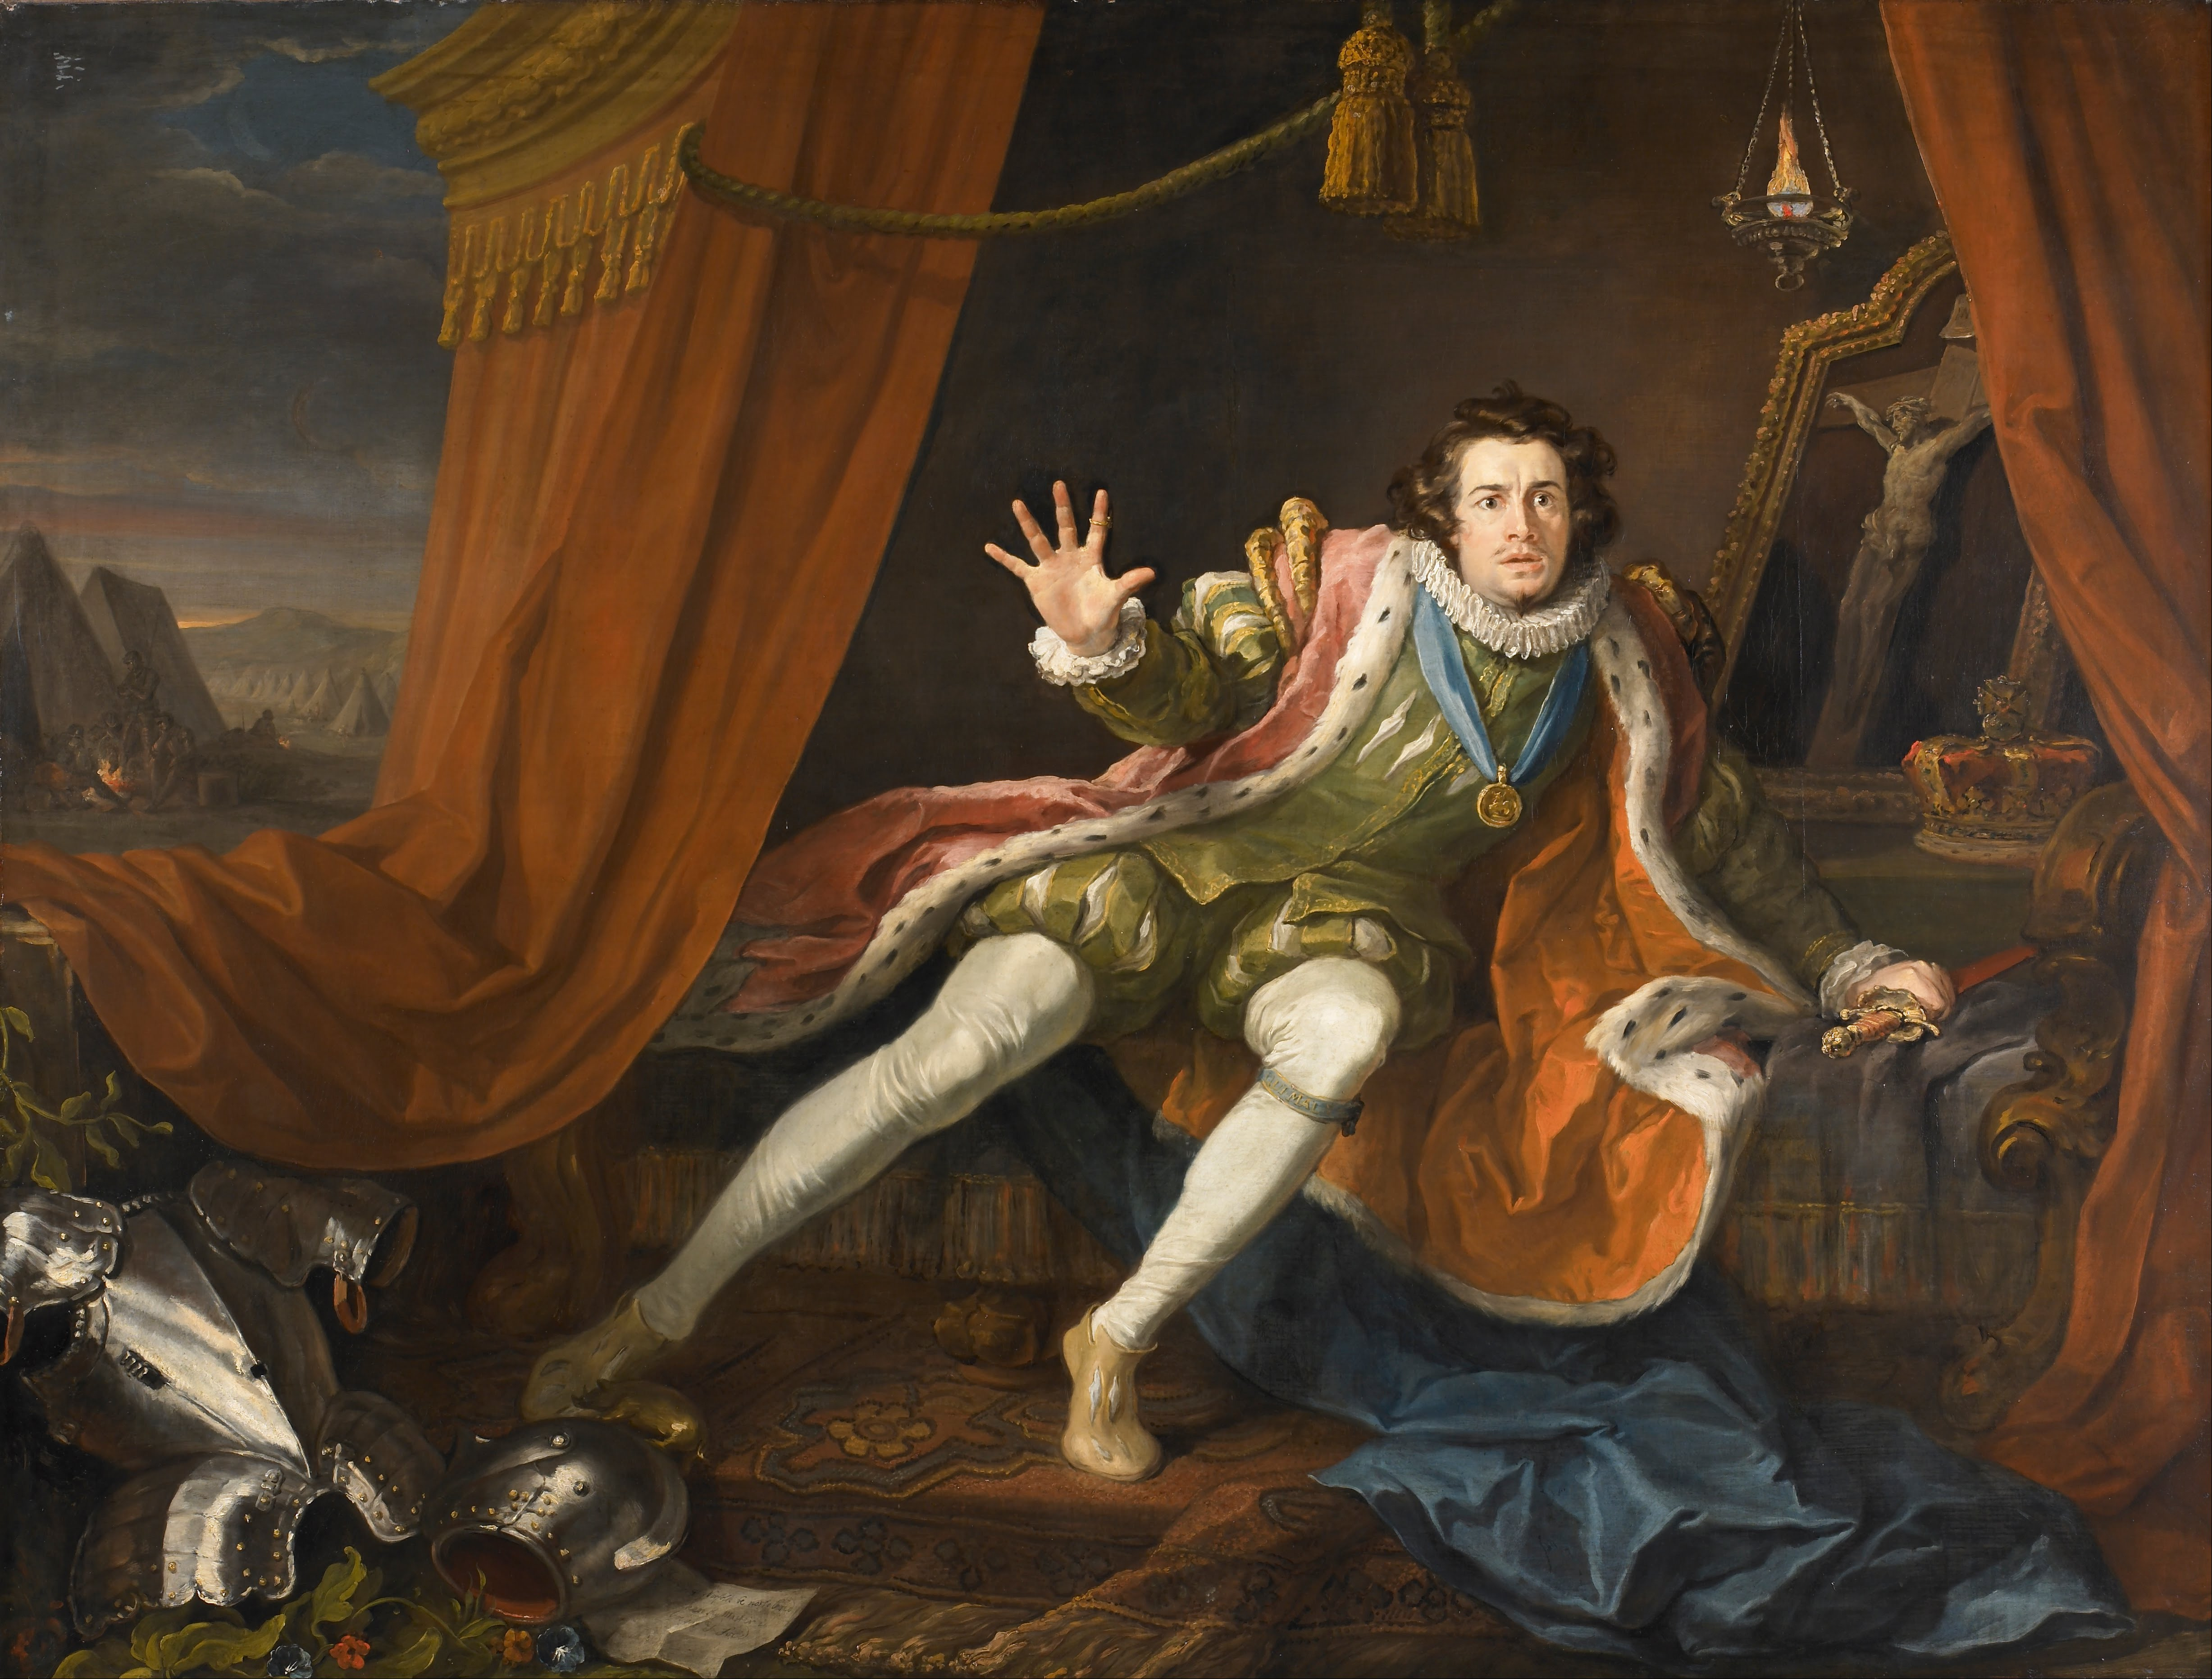 El actor David Garrick retratado por el pintor William Hogarth interpretando la tragedia shakespeariana de <em>Ricardo III</em>.